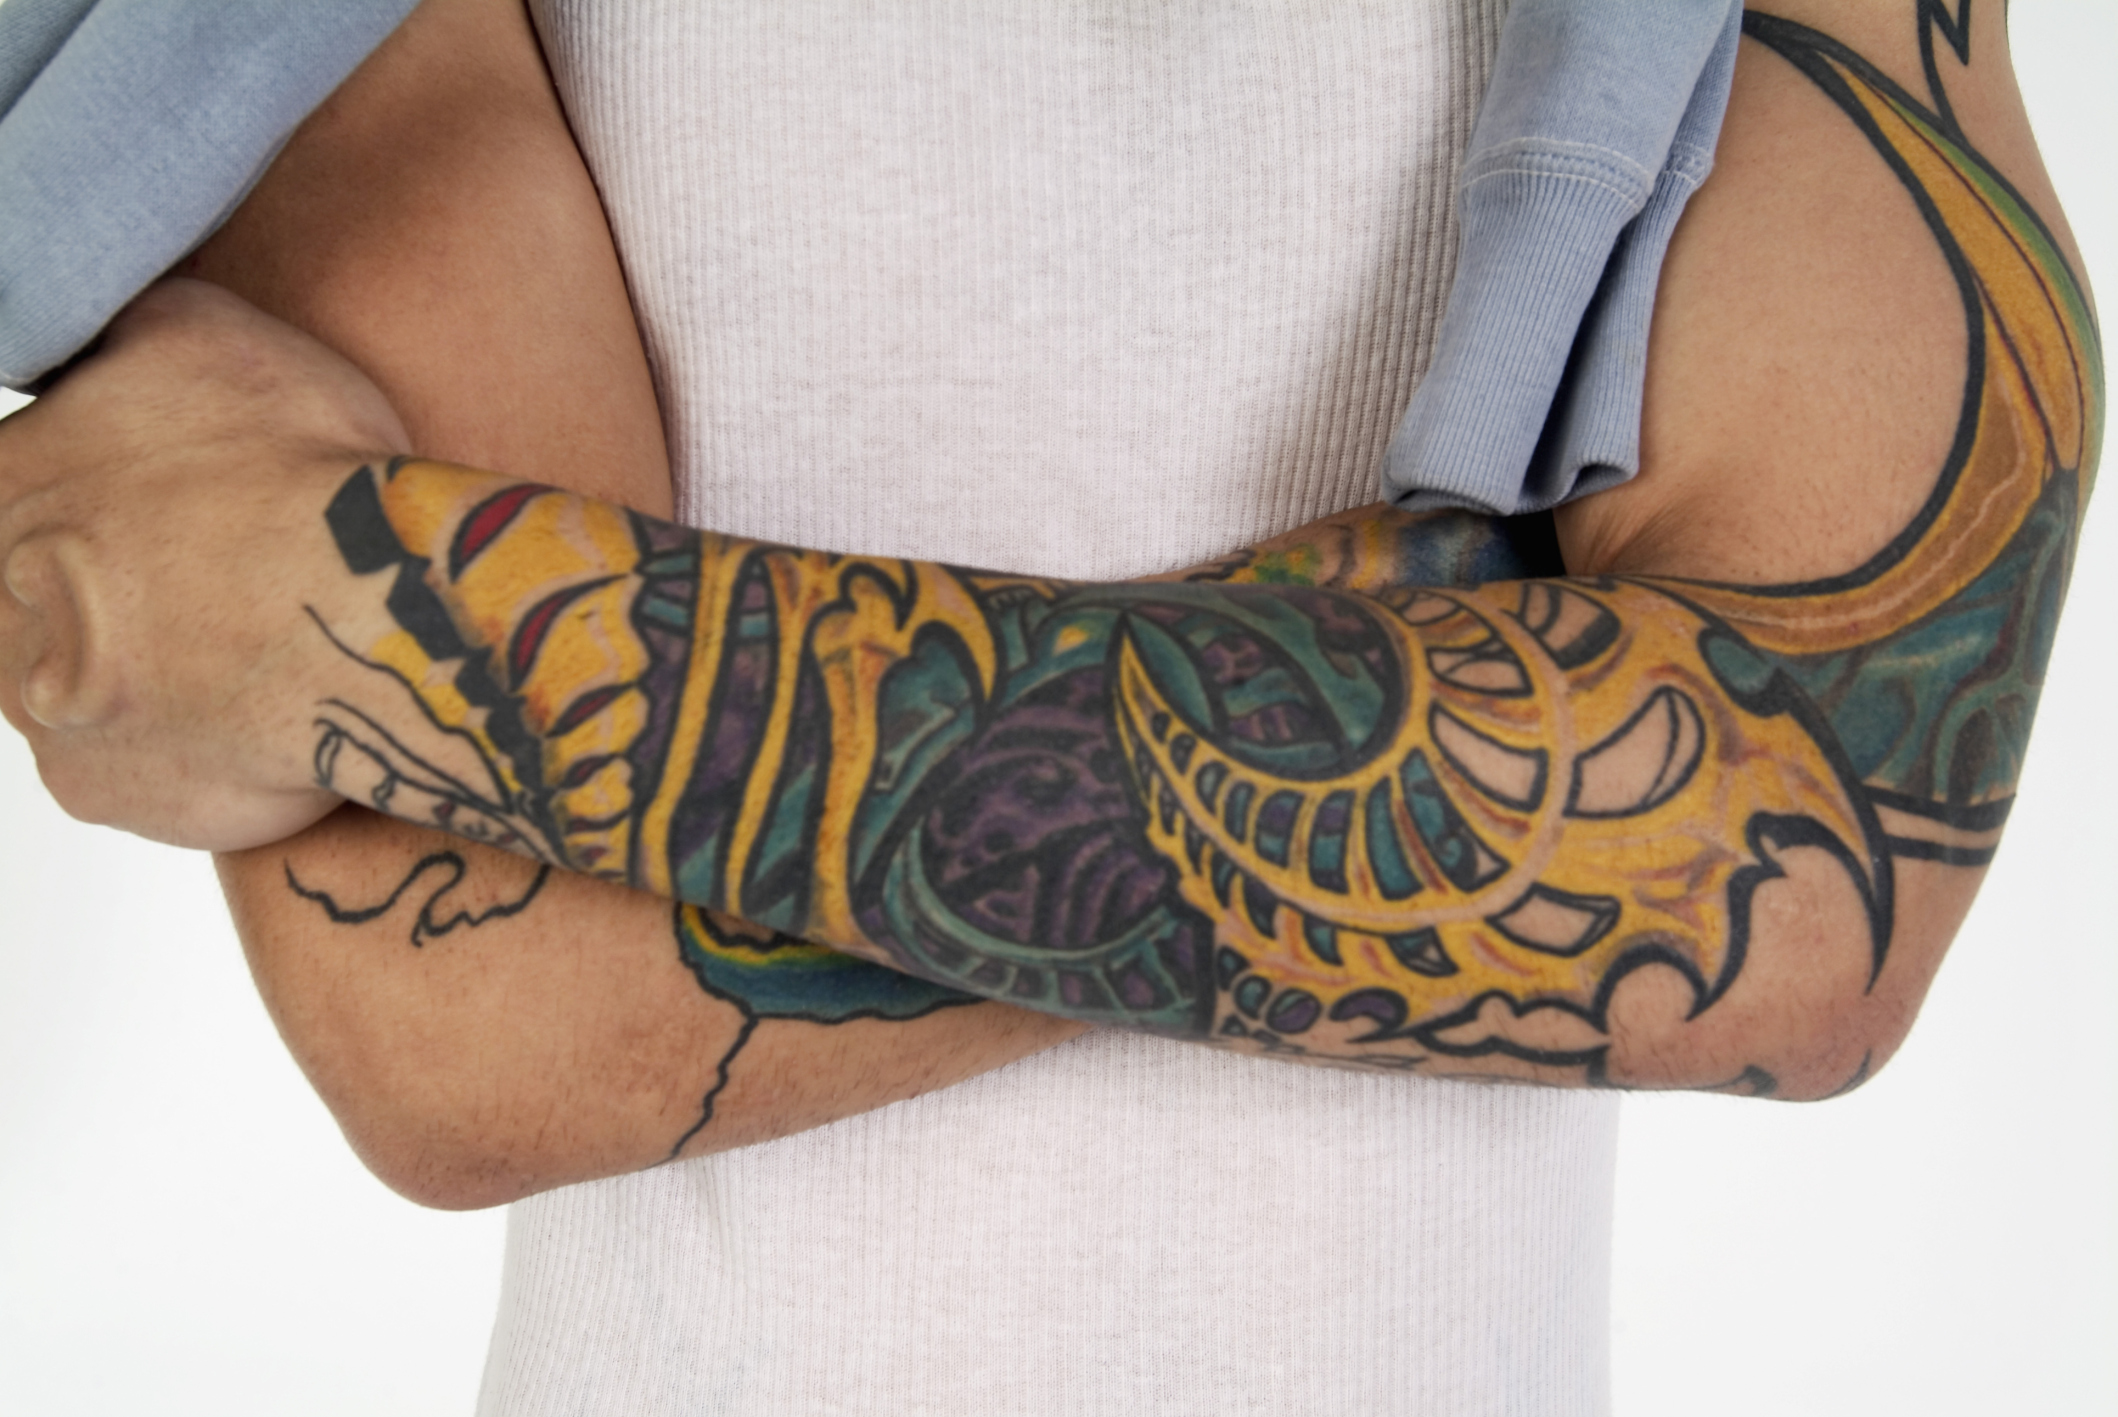 Facts on Tattoo Numbing Cream | LEAFtv